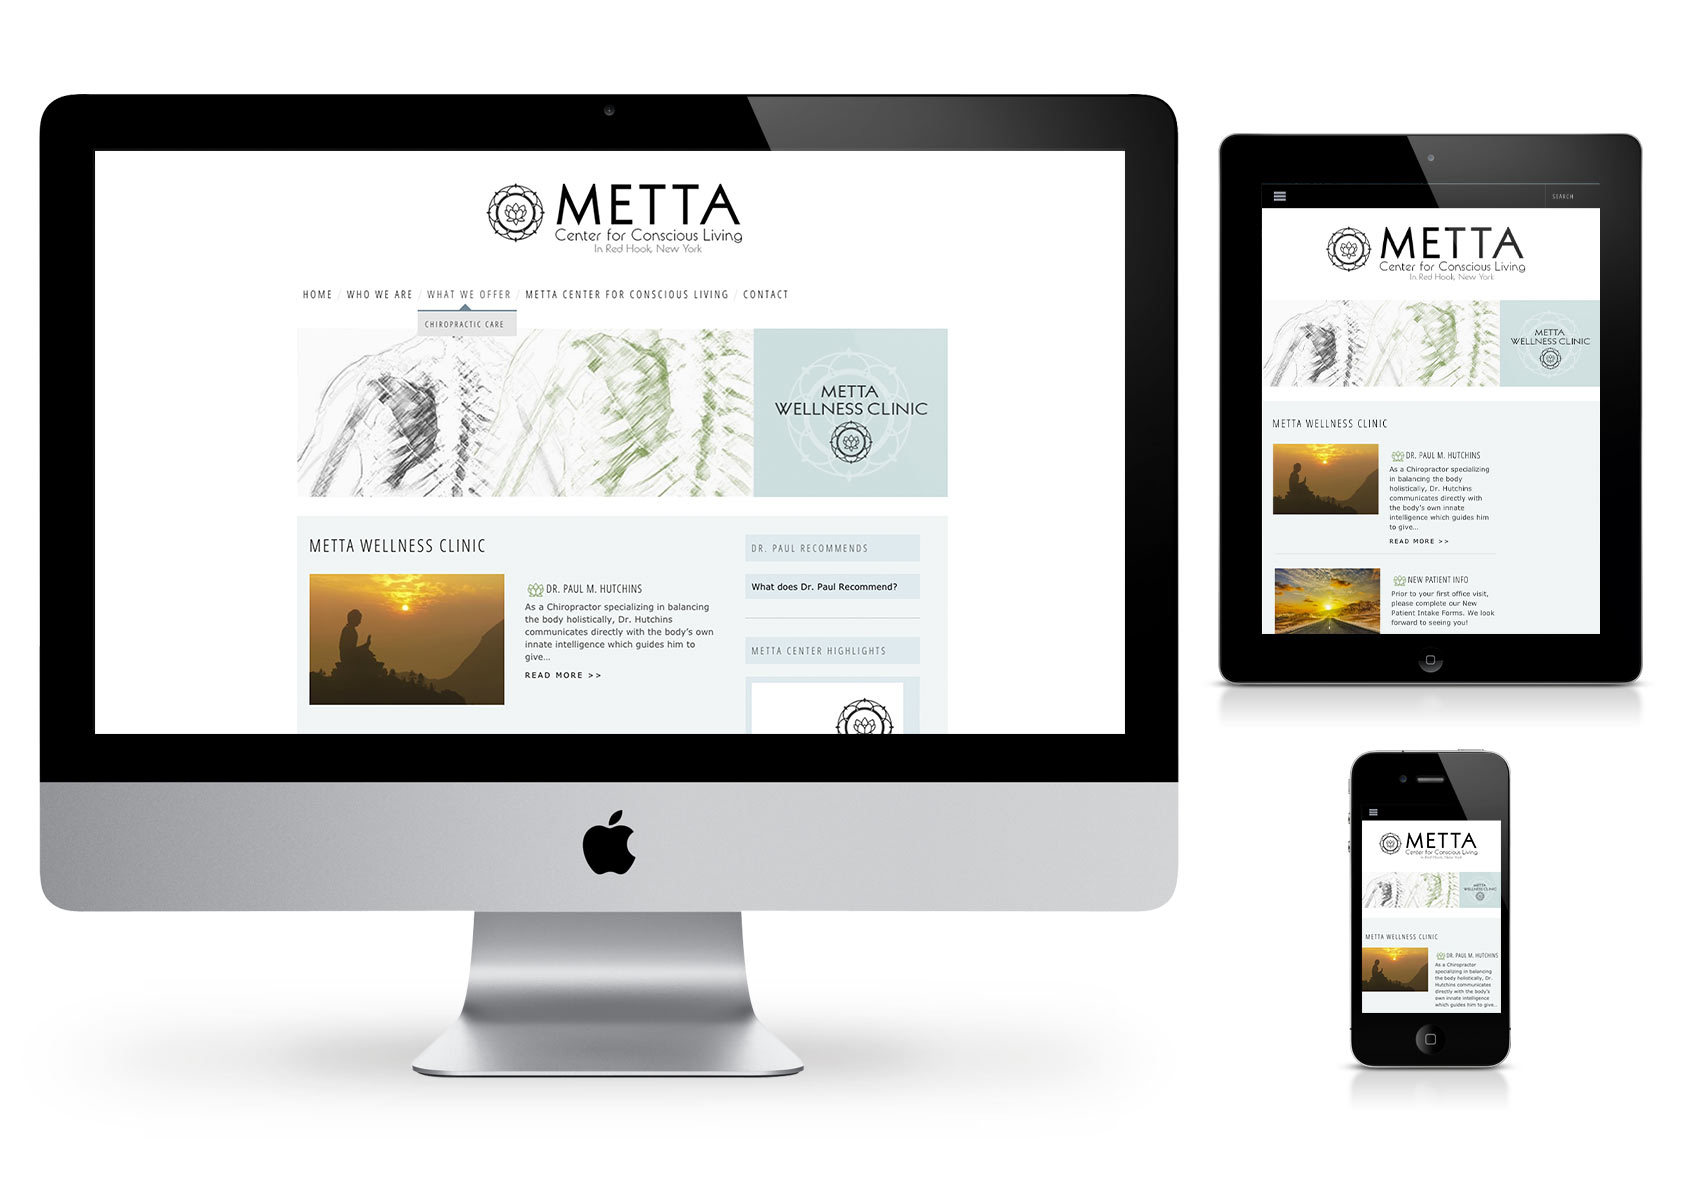 fab web - metta wellness